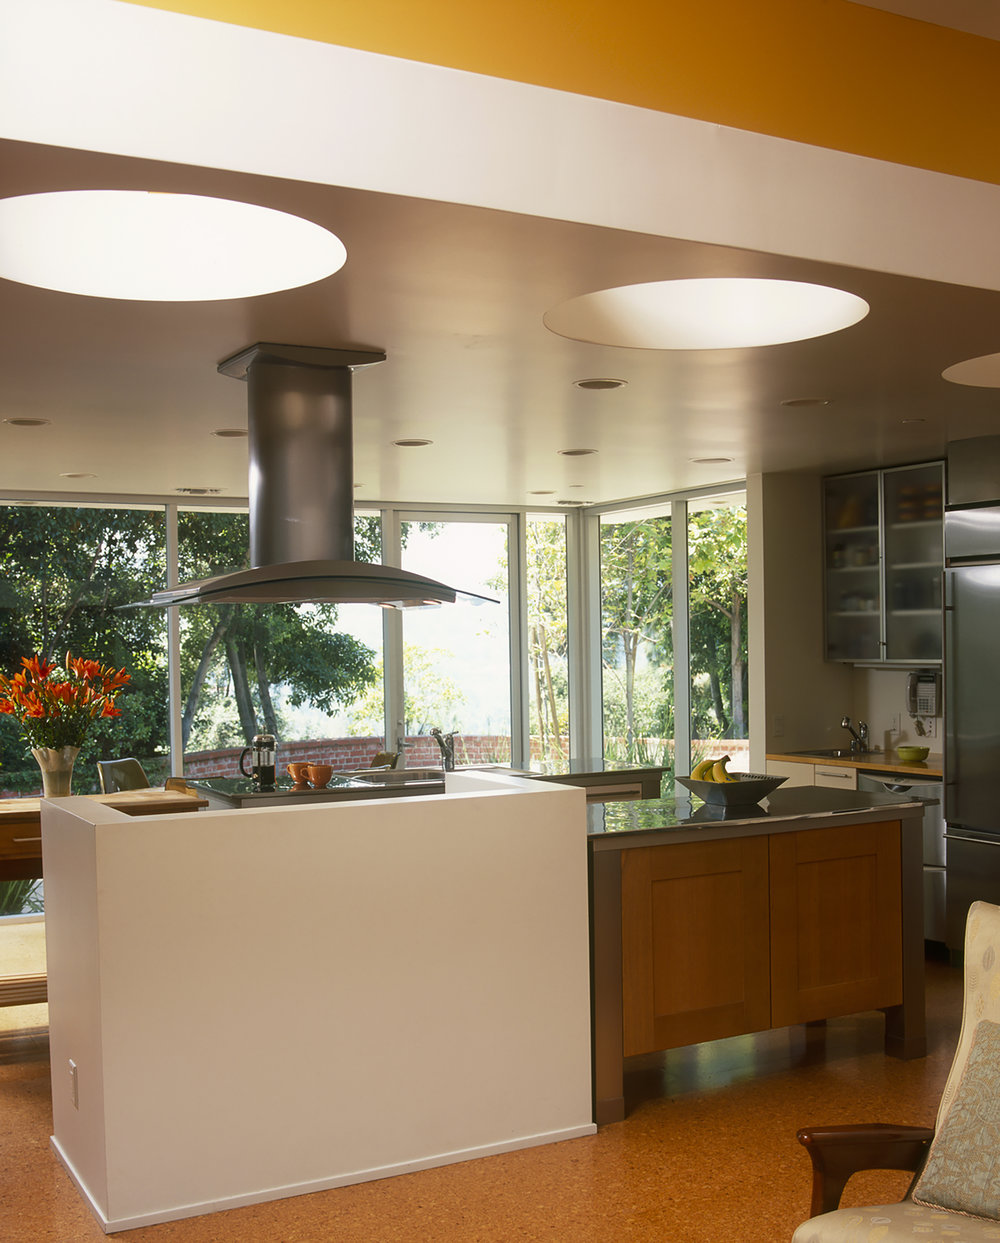 cornwall-contemporary-kitchen.jpg